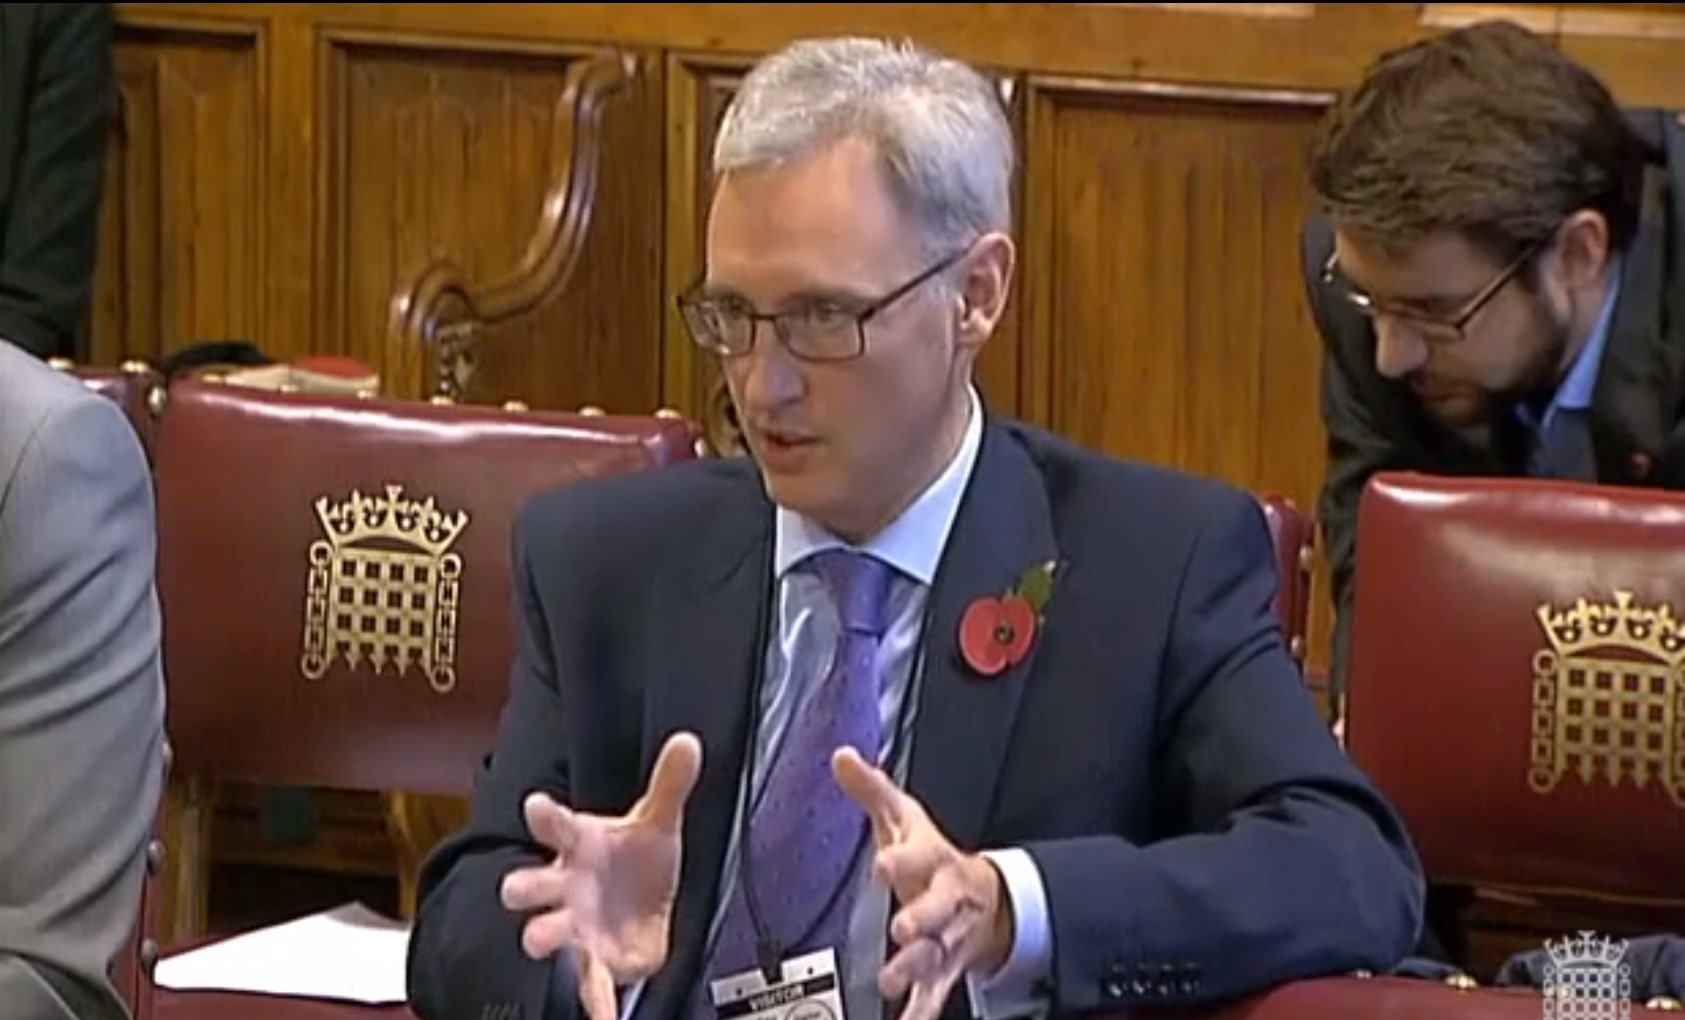 Professor Gavin Parker gives evidence at House of Lords committee